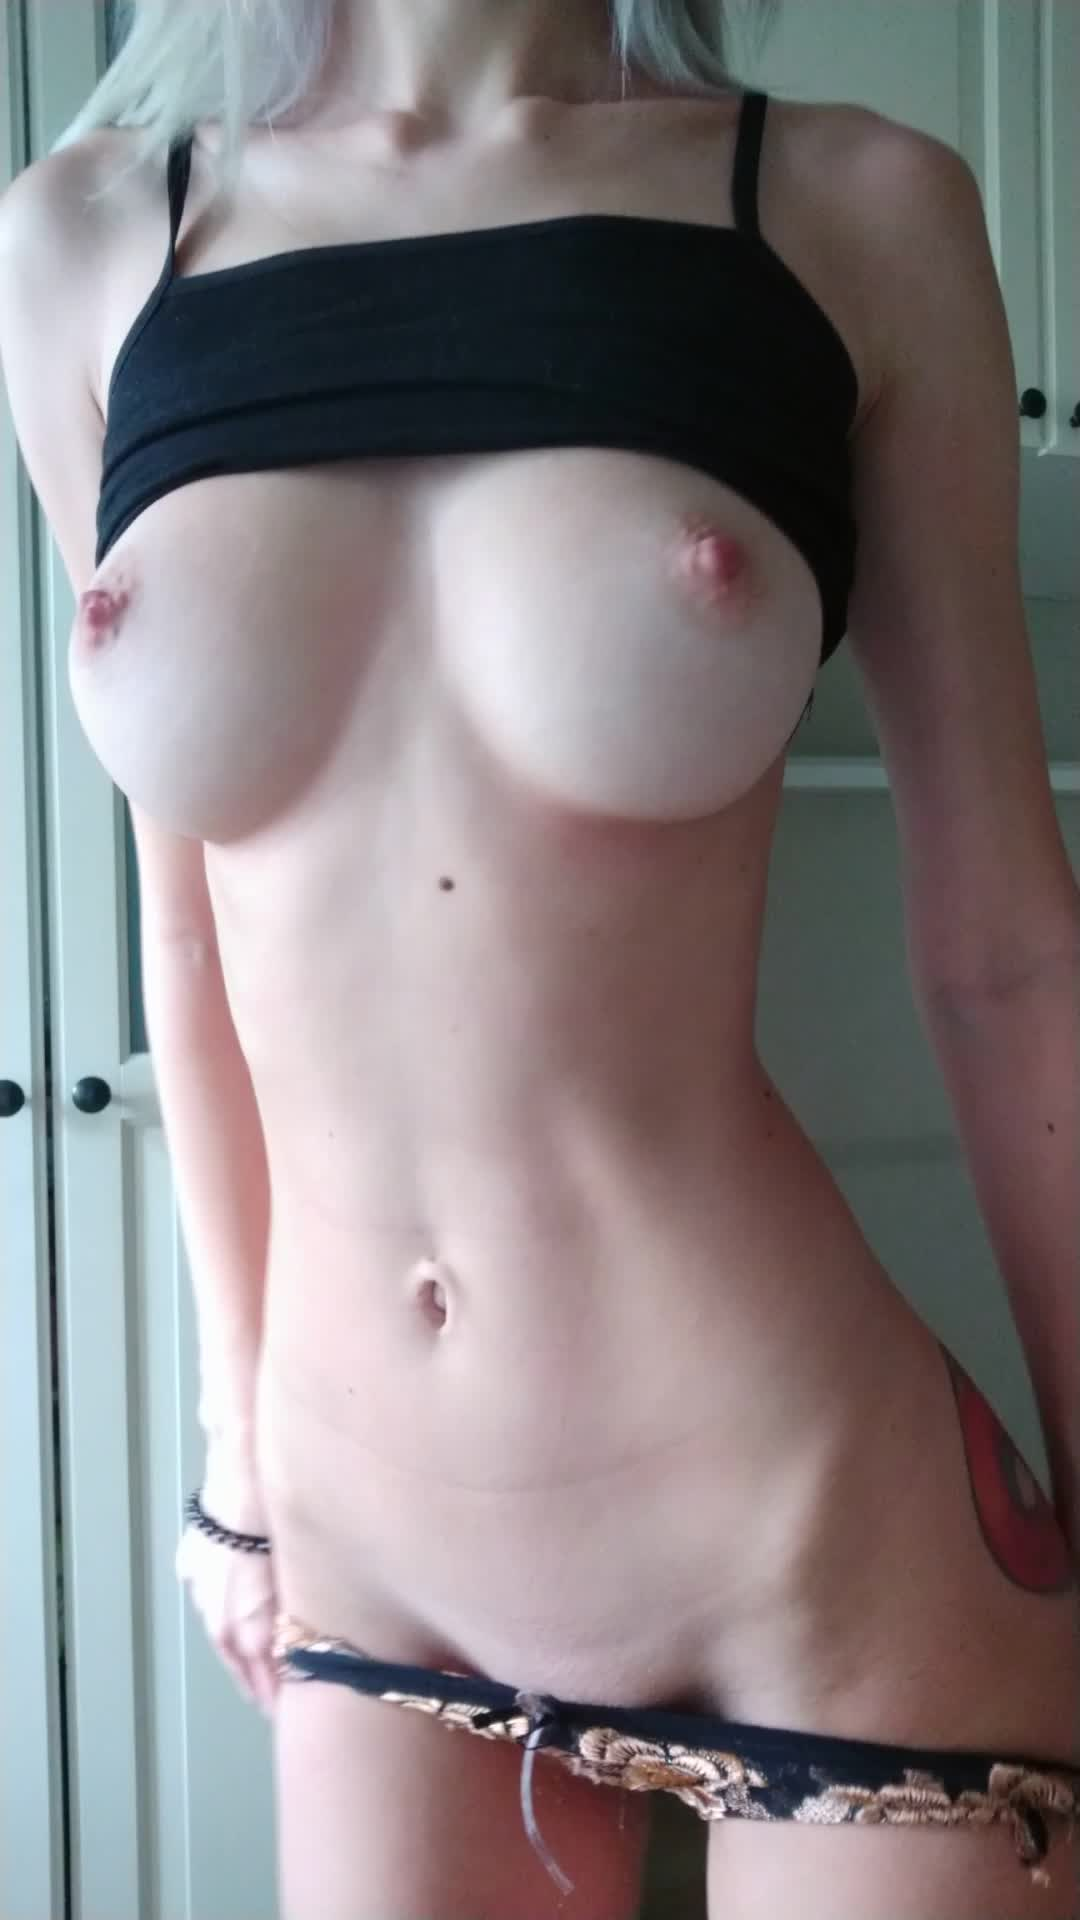 Nice day to set up your own custom video or ask me about anything else ;) More in comments